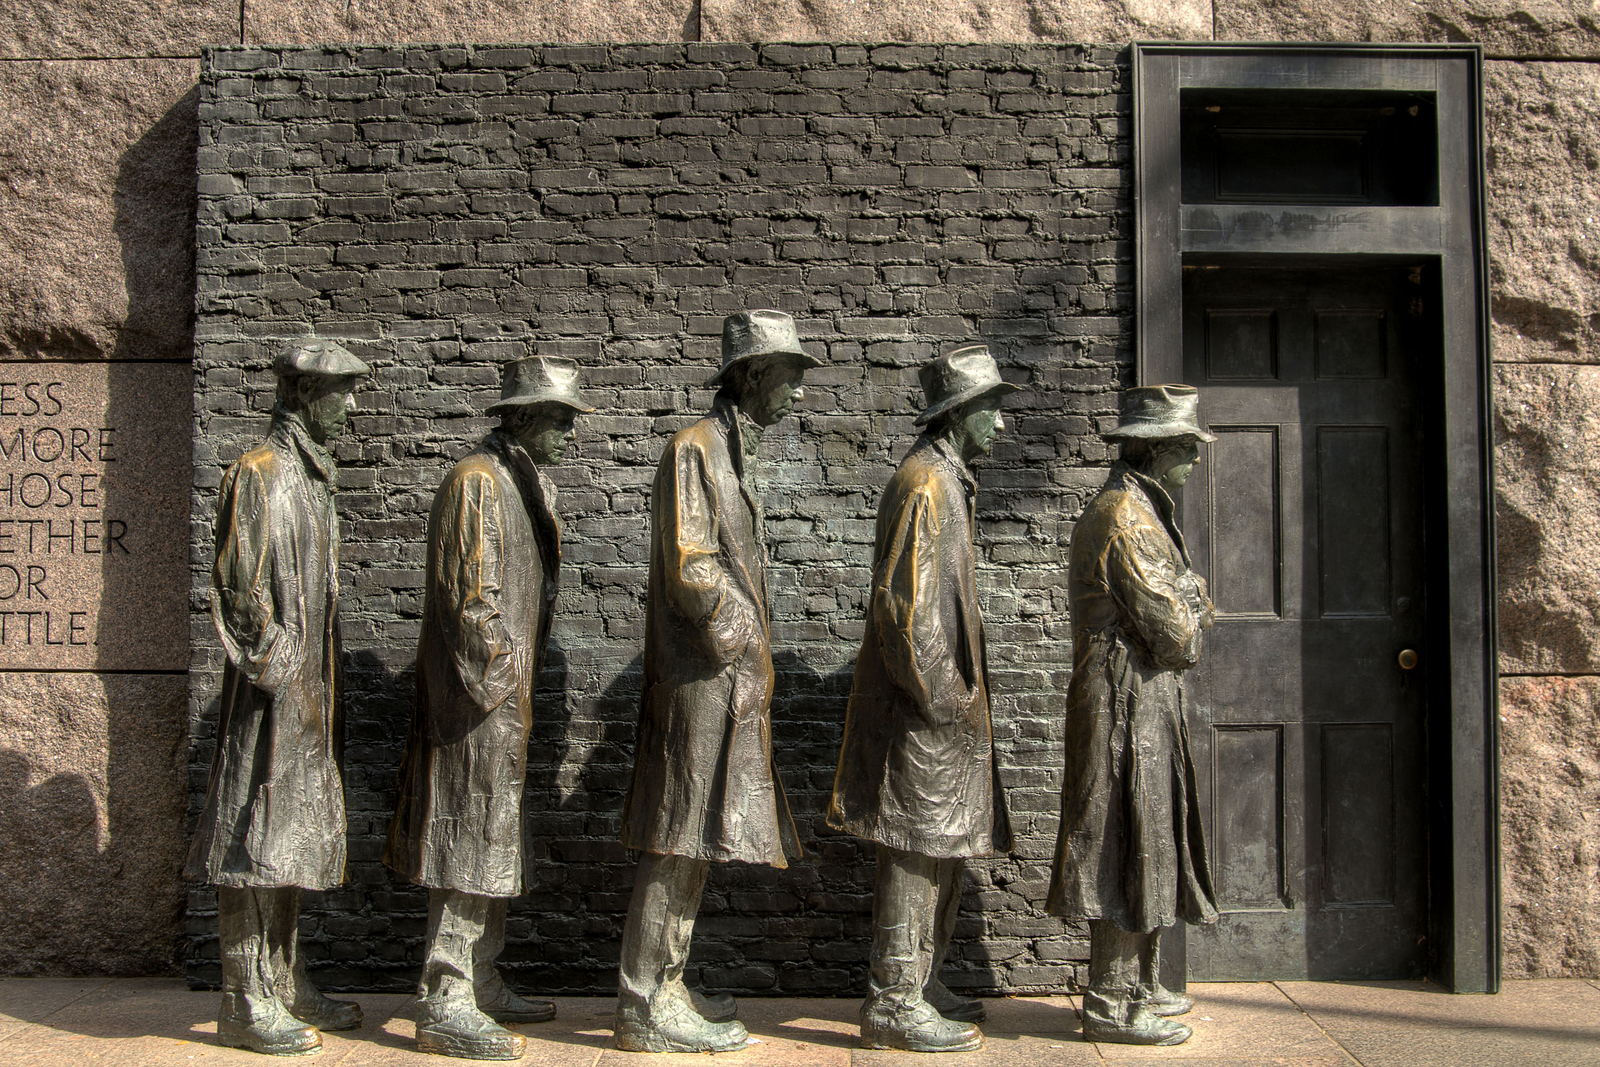 A set of statues depicting the Great Depression at the Franklin Delano Roosevelt Memorial in Washington, DC, on Sunday, August 17, 2014. Copyright 2014 Jason Barnette